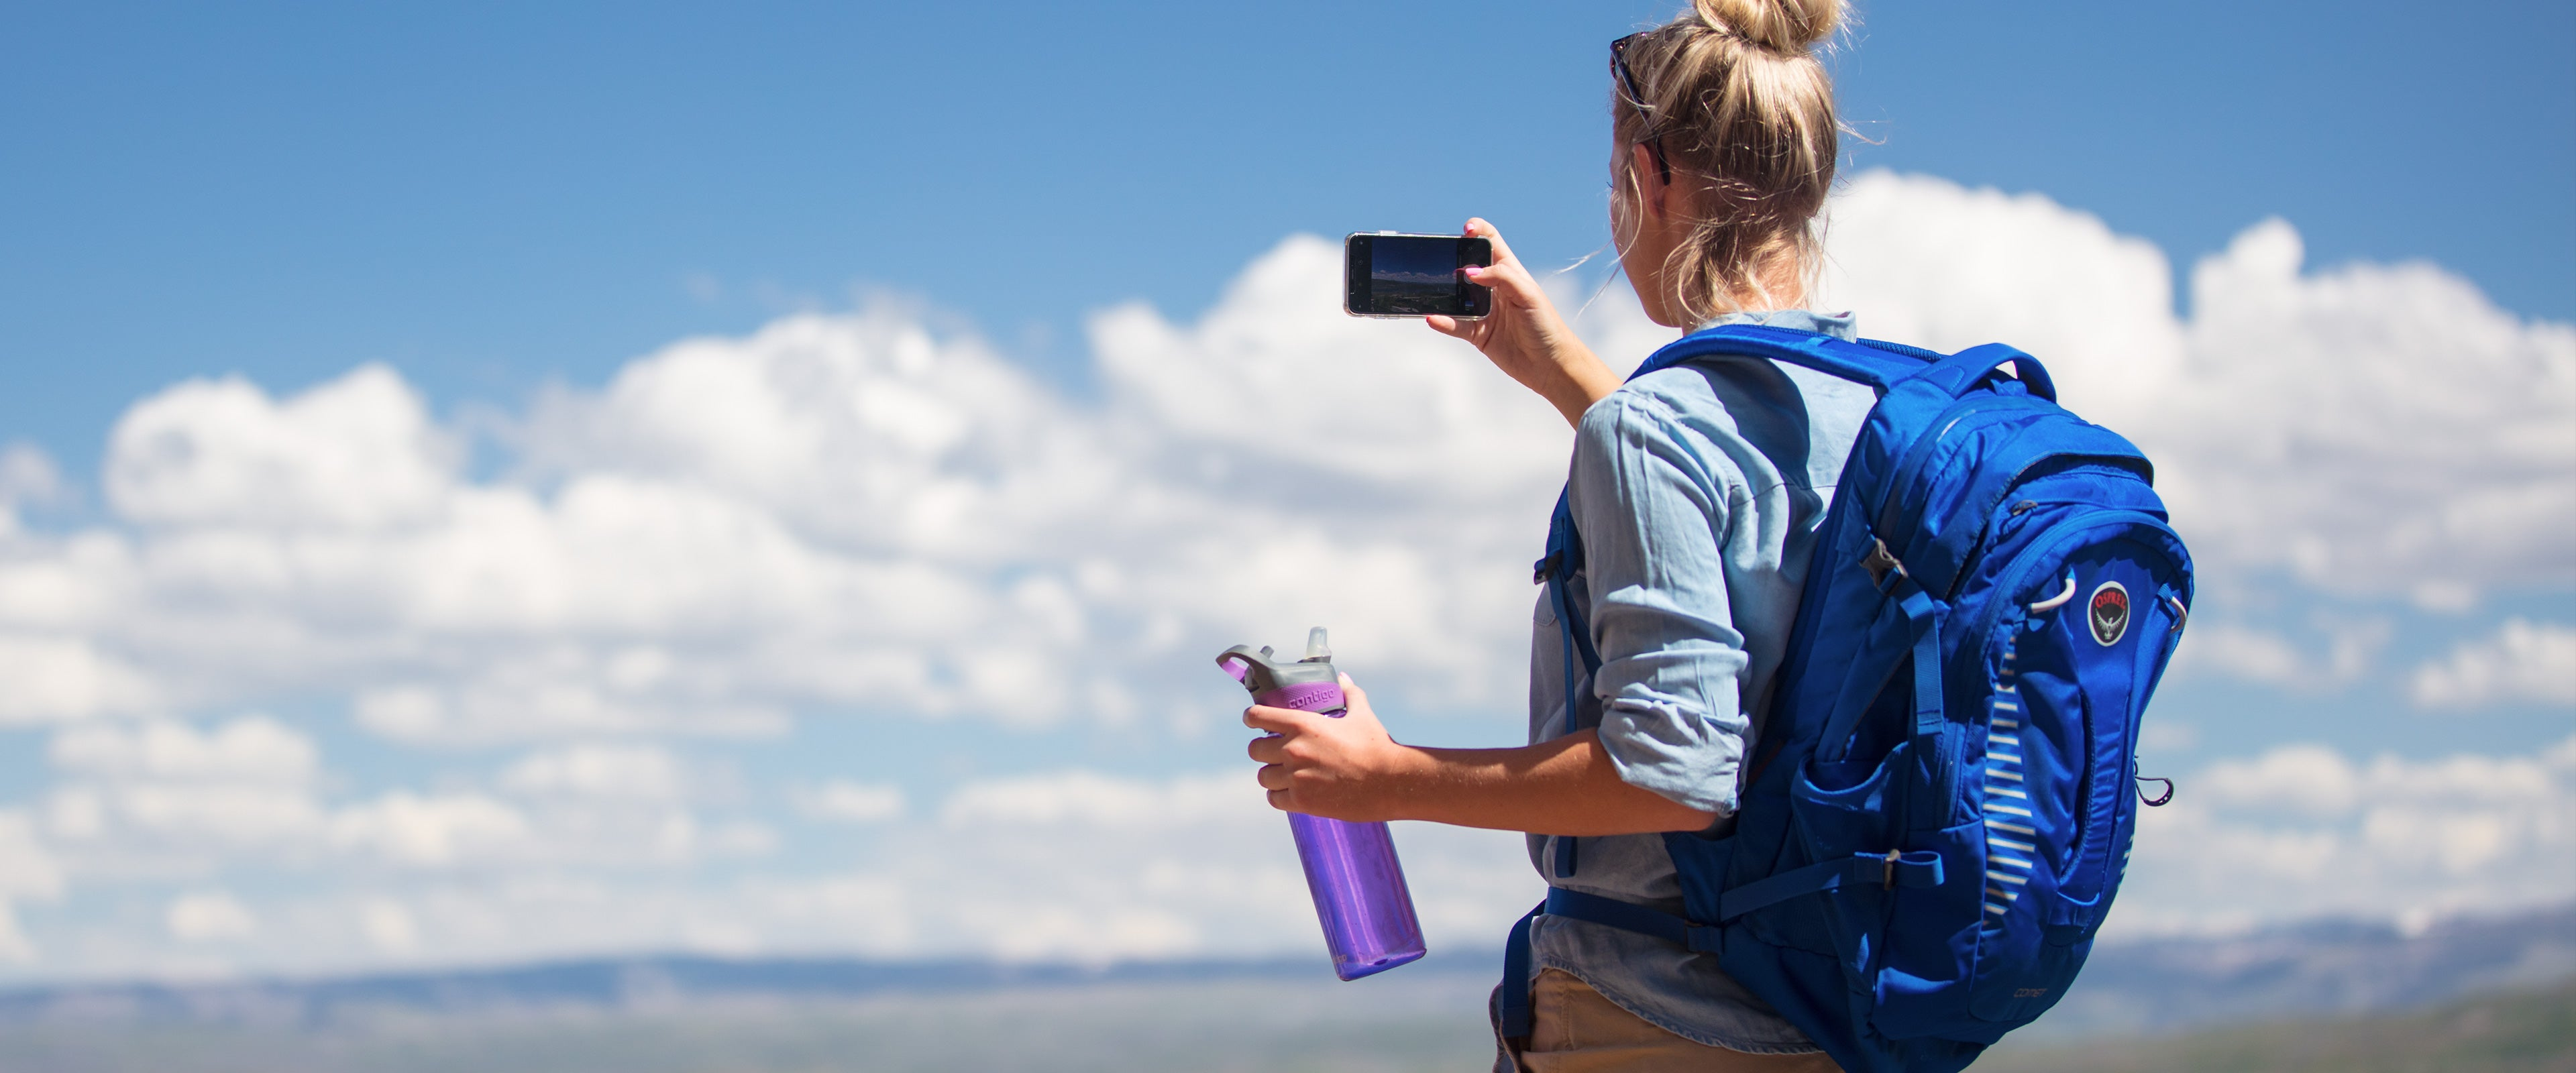 Woman using her phone to take a landscape picture